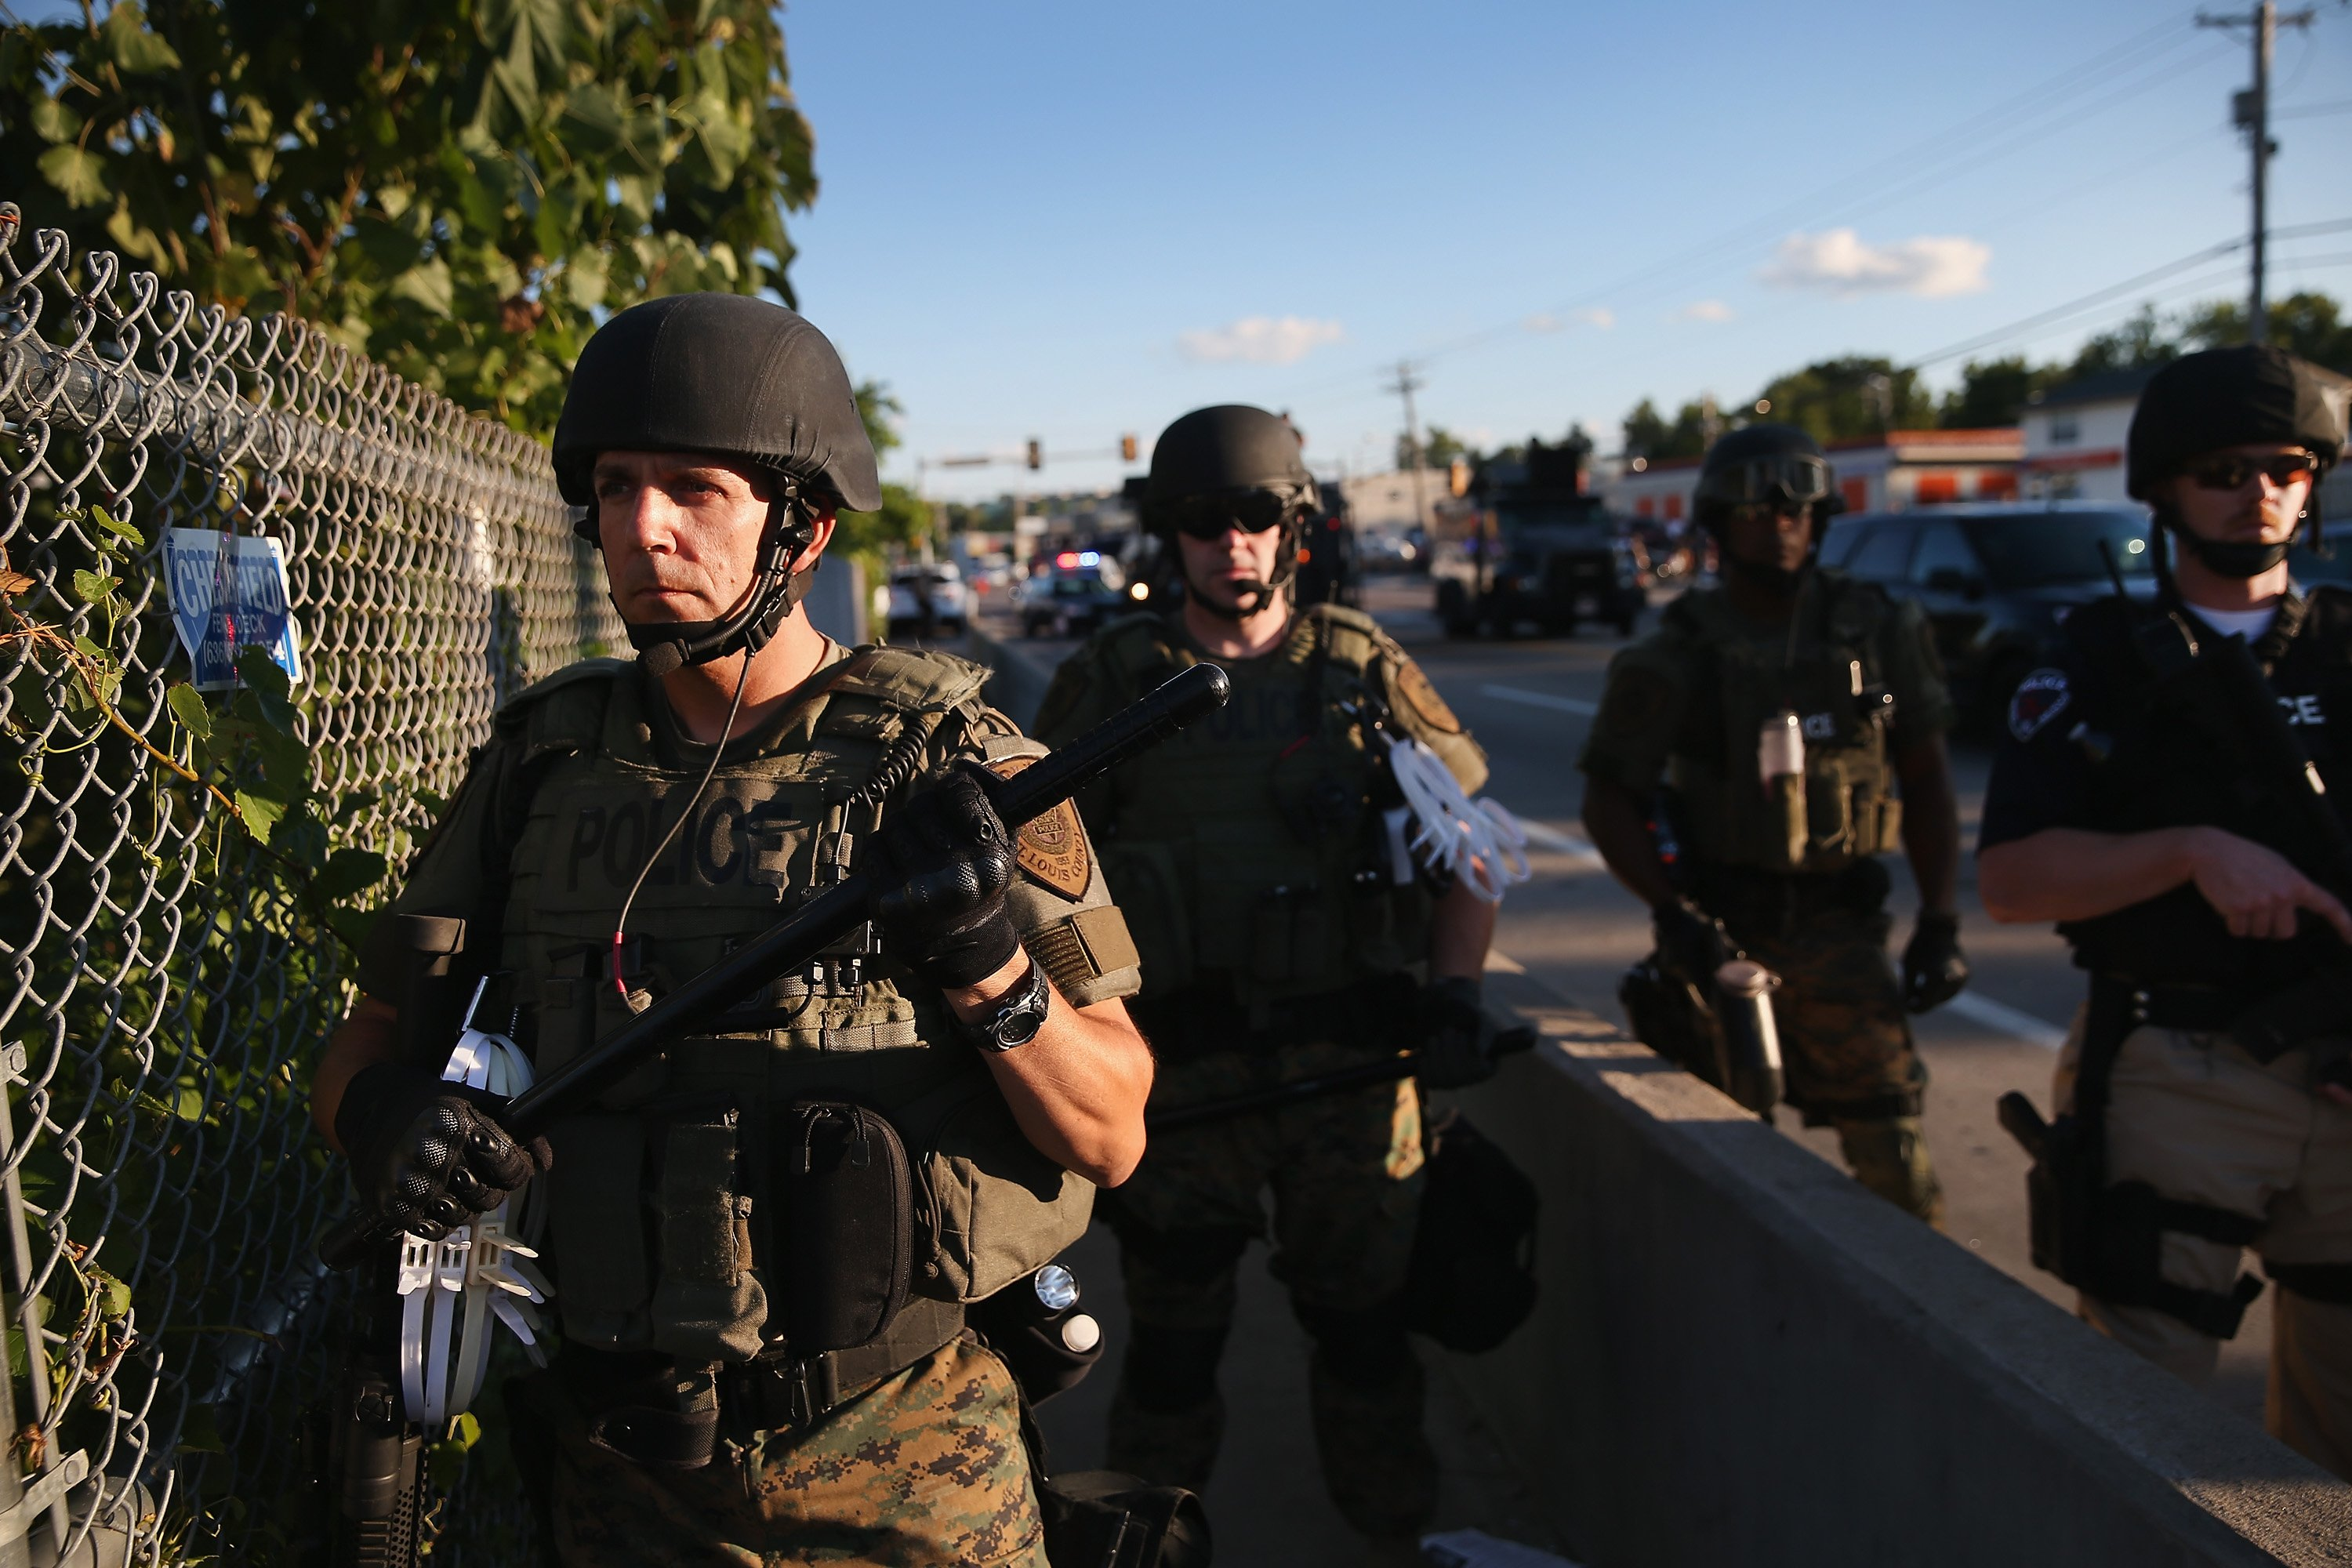 Police take up position to control demonstrators who were protesting the killing of teenager Michael Brown in Ferguson, Mo. on Aug. 12, 2014.